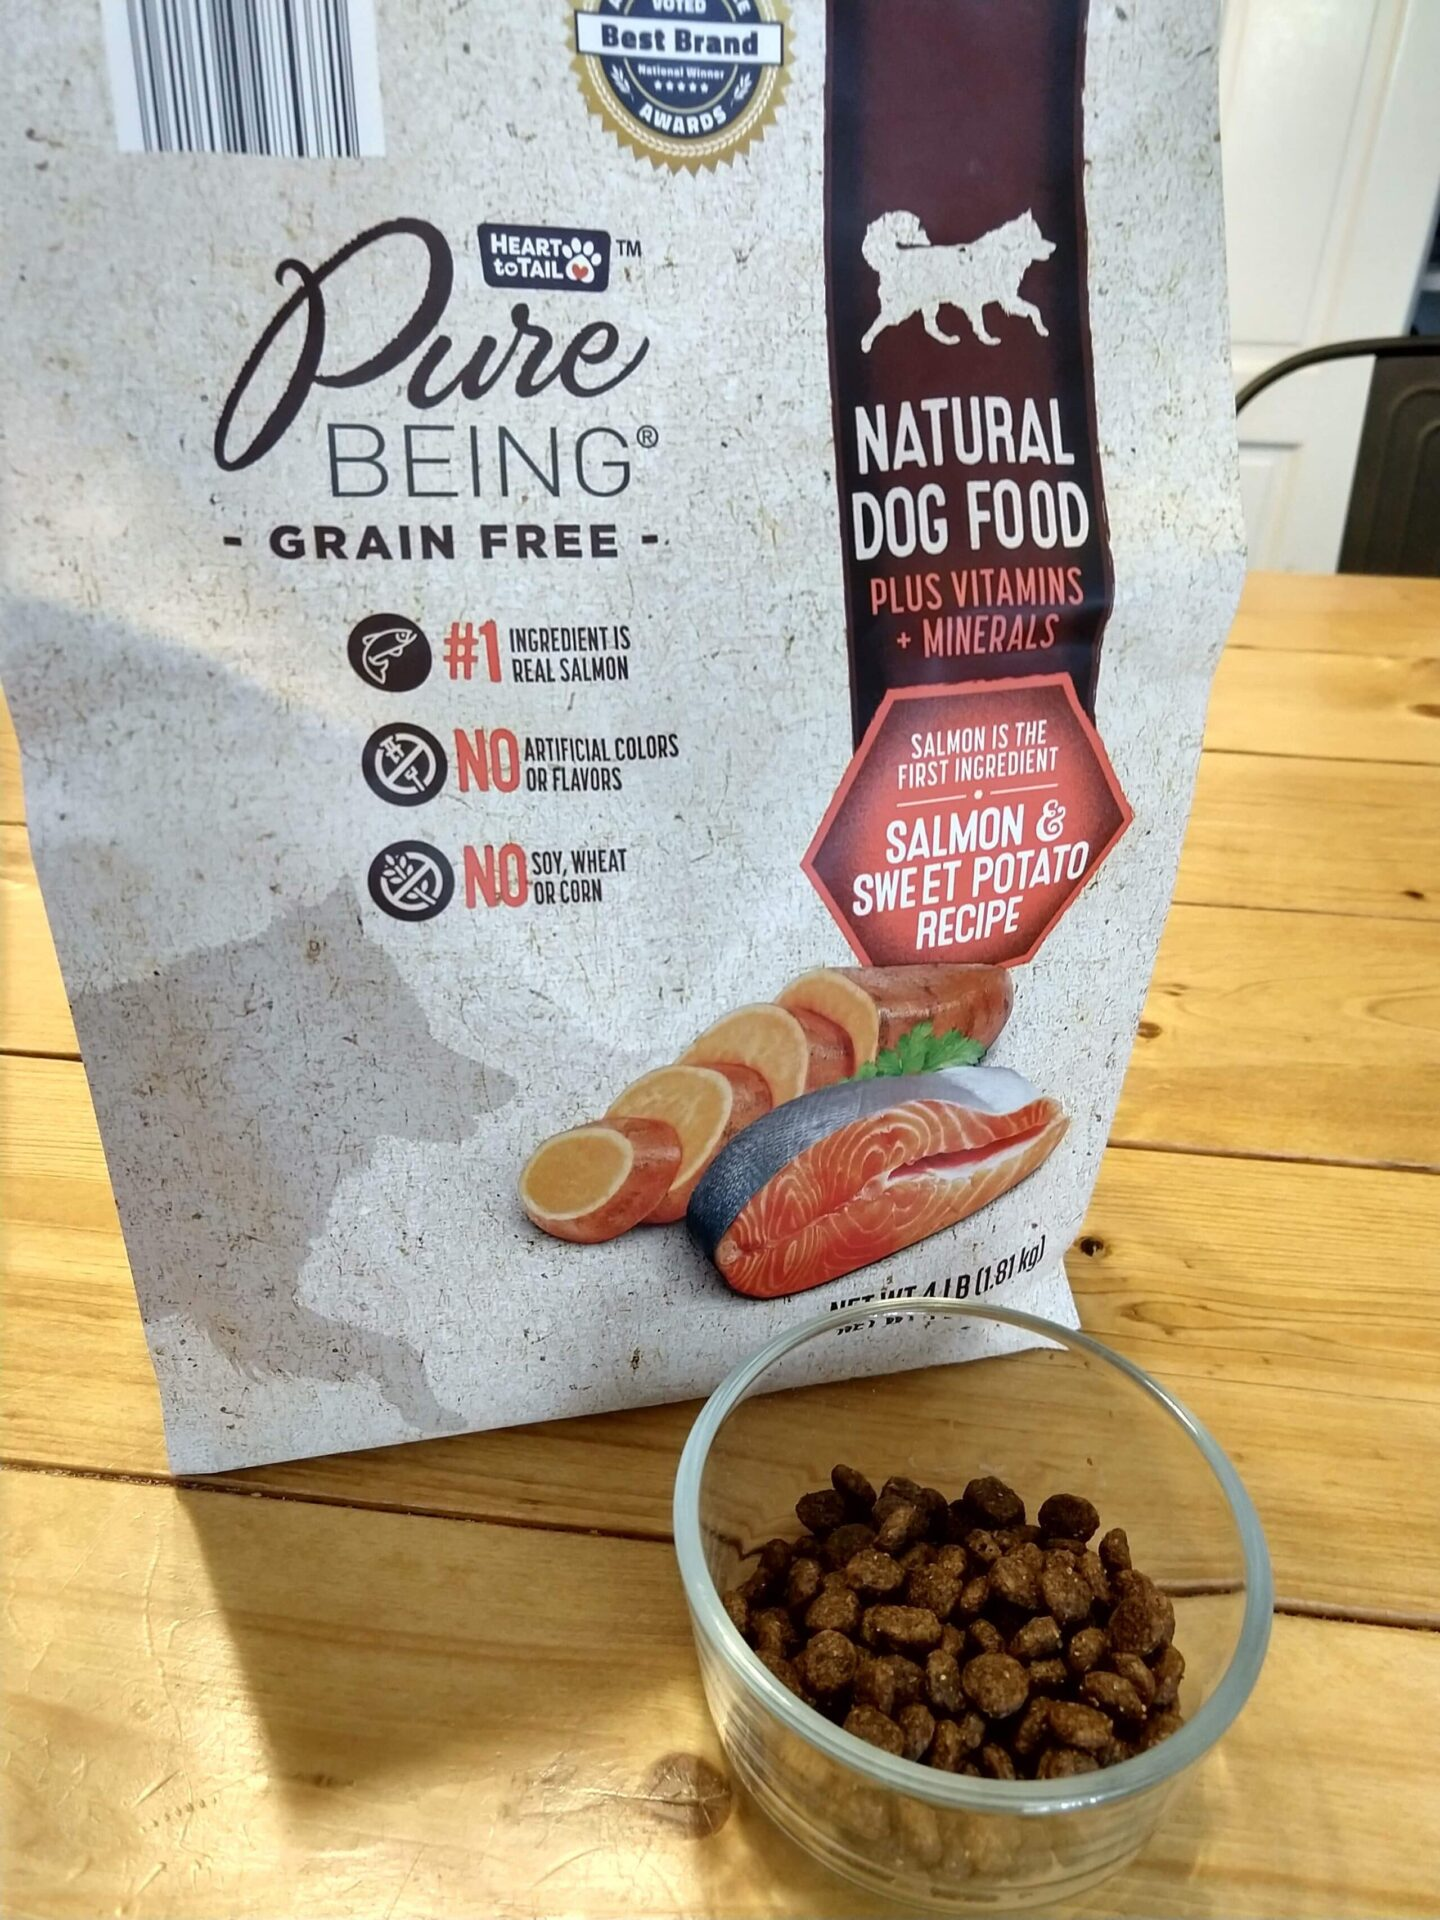 Heart To Tail Pure Being Grain Free Natural Dog Food Aldi Reviewer